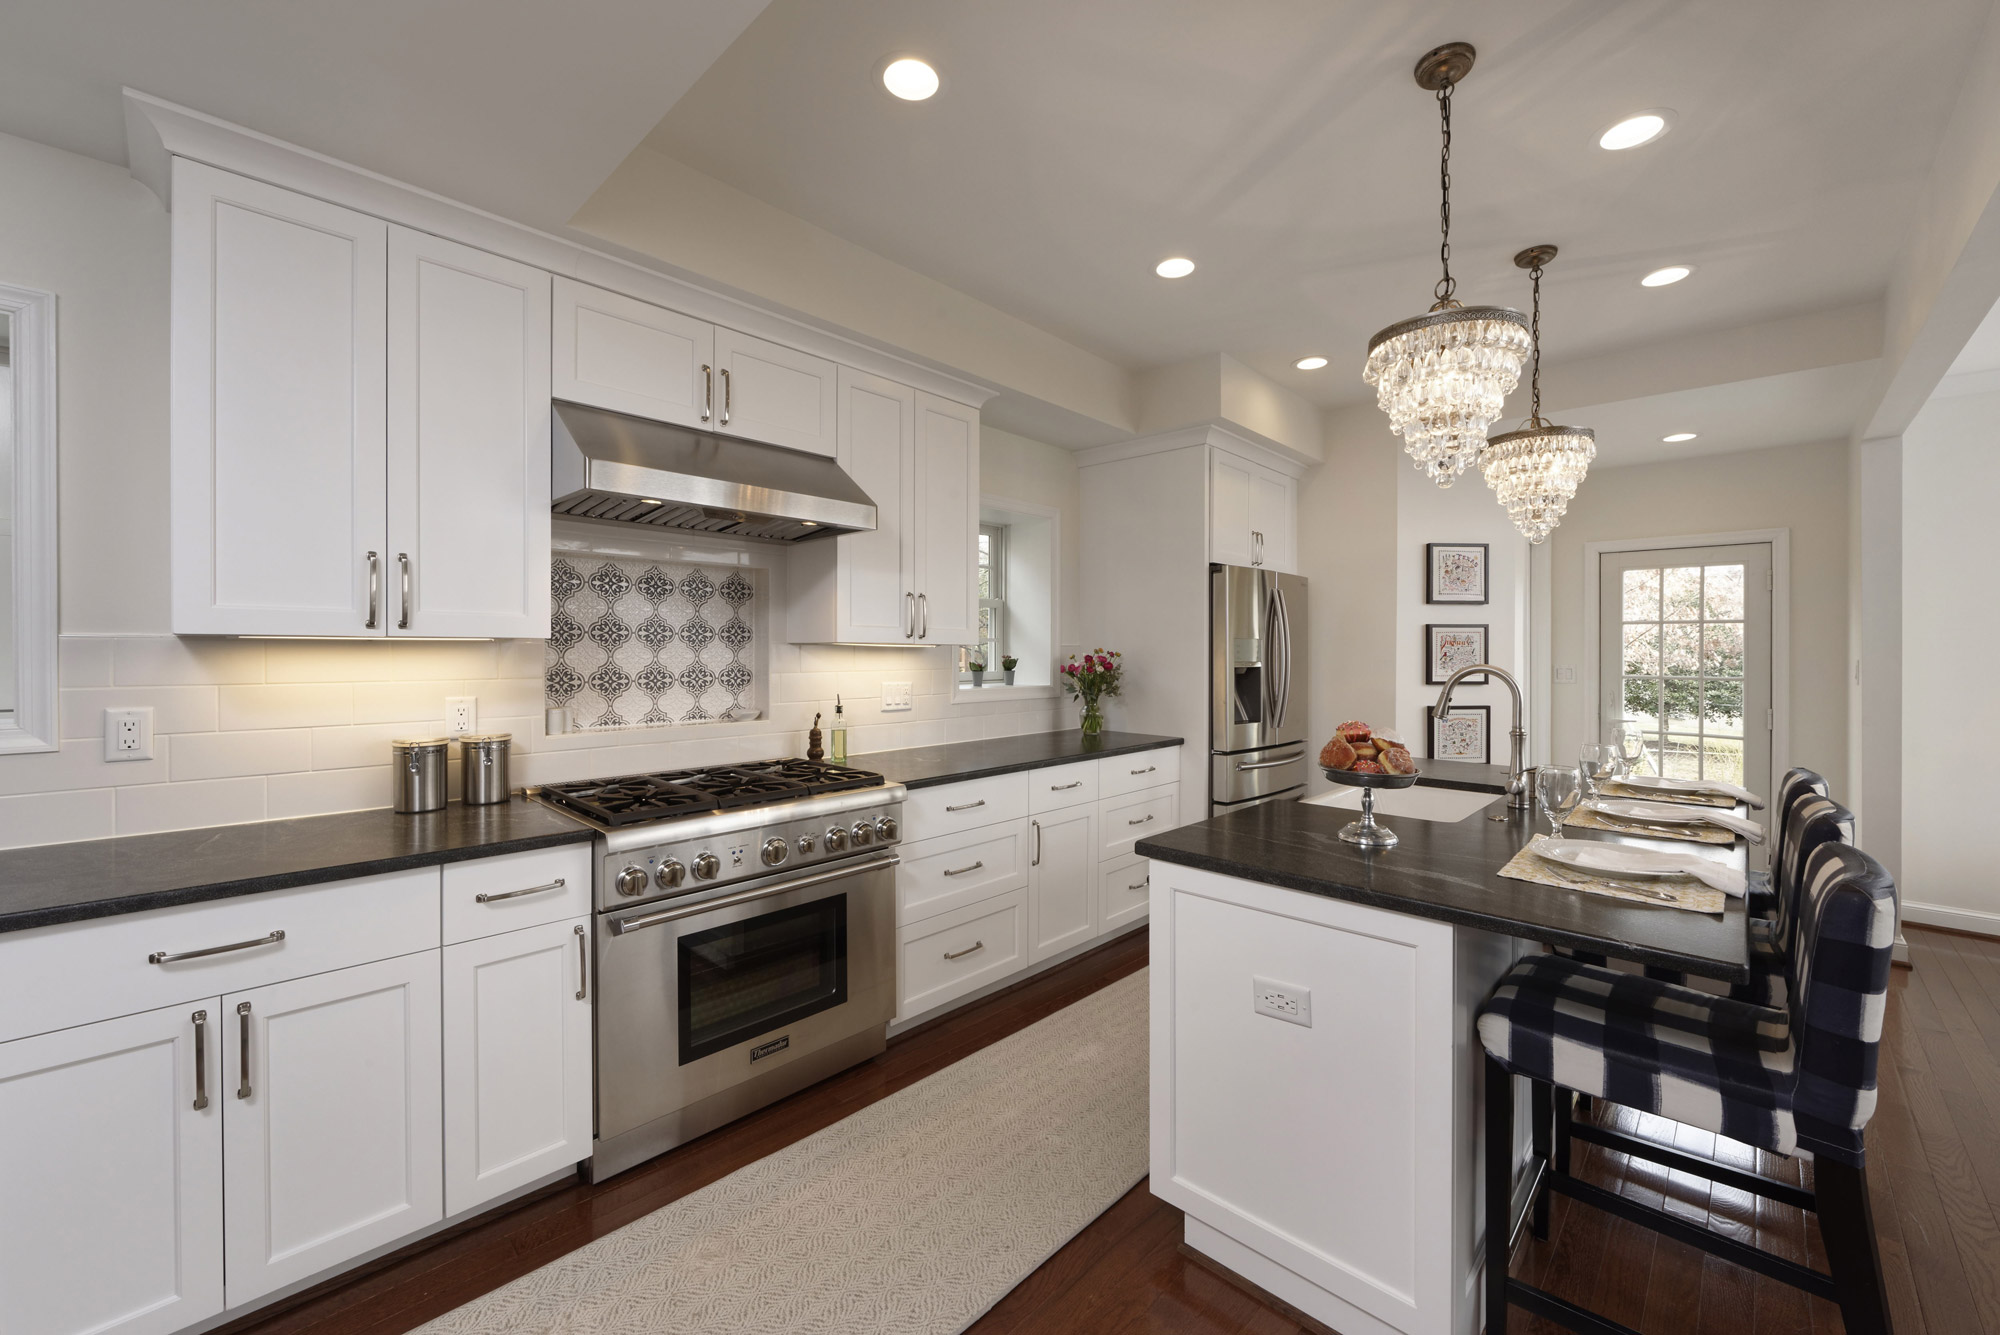 average kitchen remodel costs in dc metro area